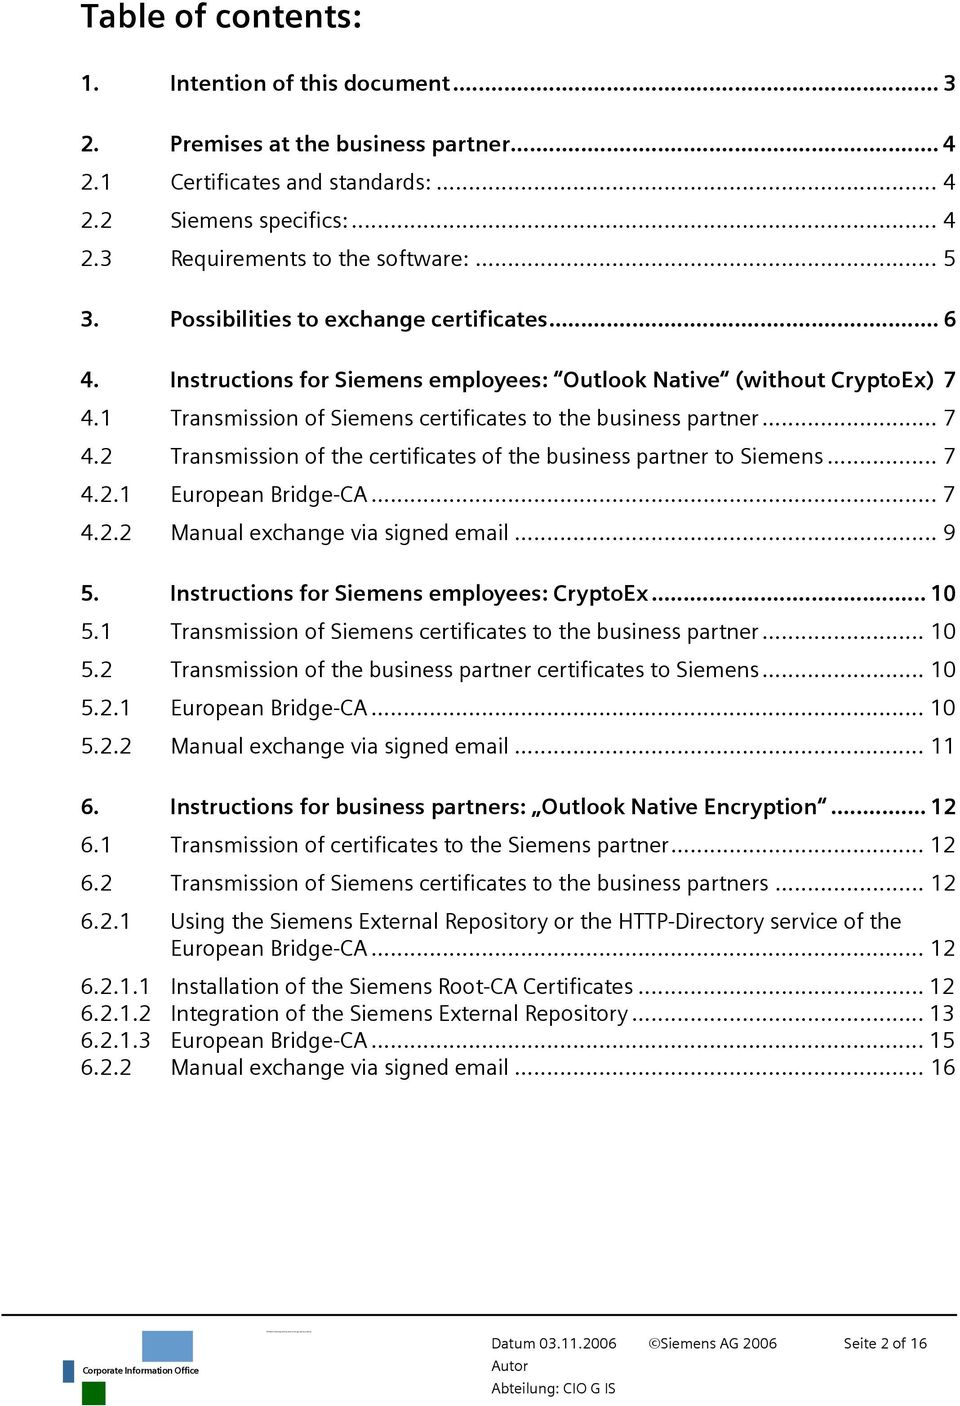 .. 7 4.2.1 European Bridge-CA... 7 4.2.2 Manual exchange via signed email... 9 5. Instructions for Siemens employees: CryptoEx... 10 5.1 Transmission of Siemens certificates to the business partner.